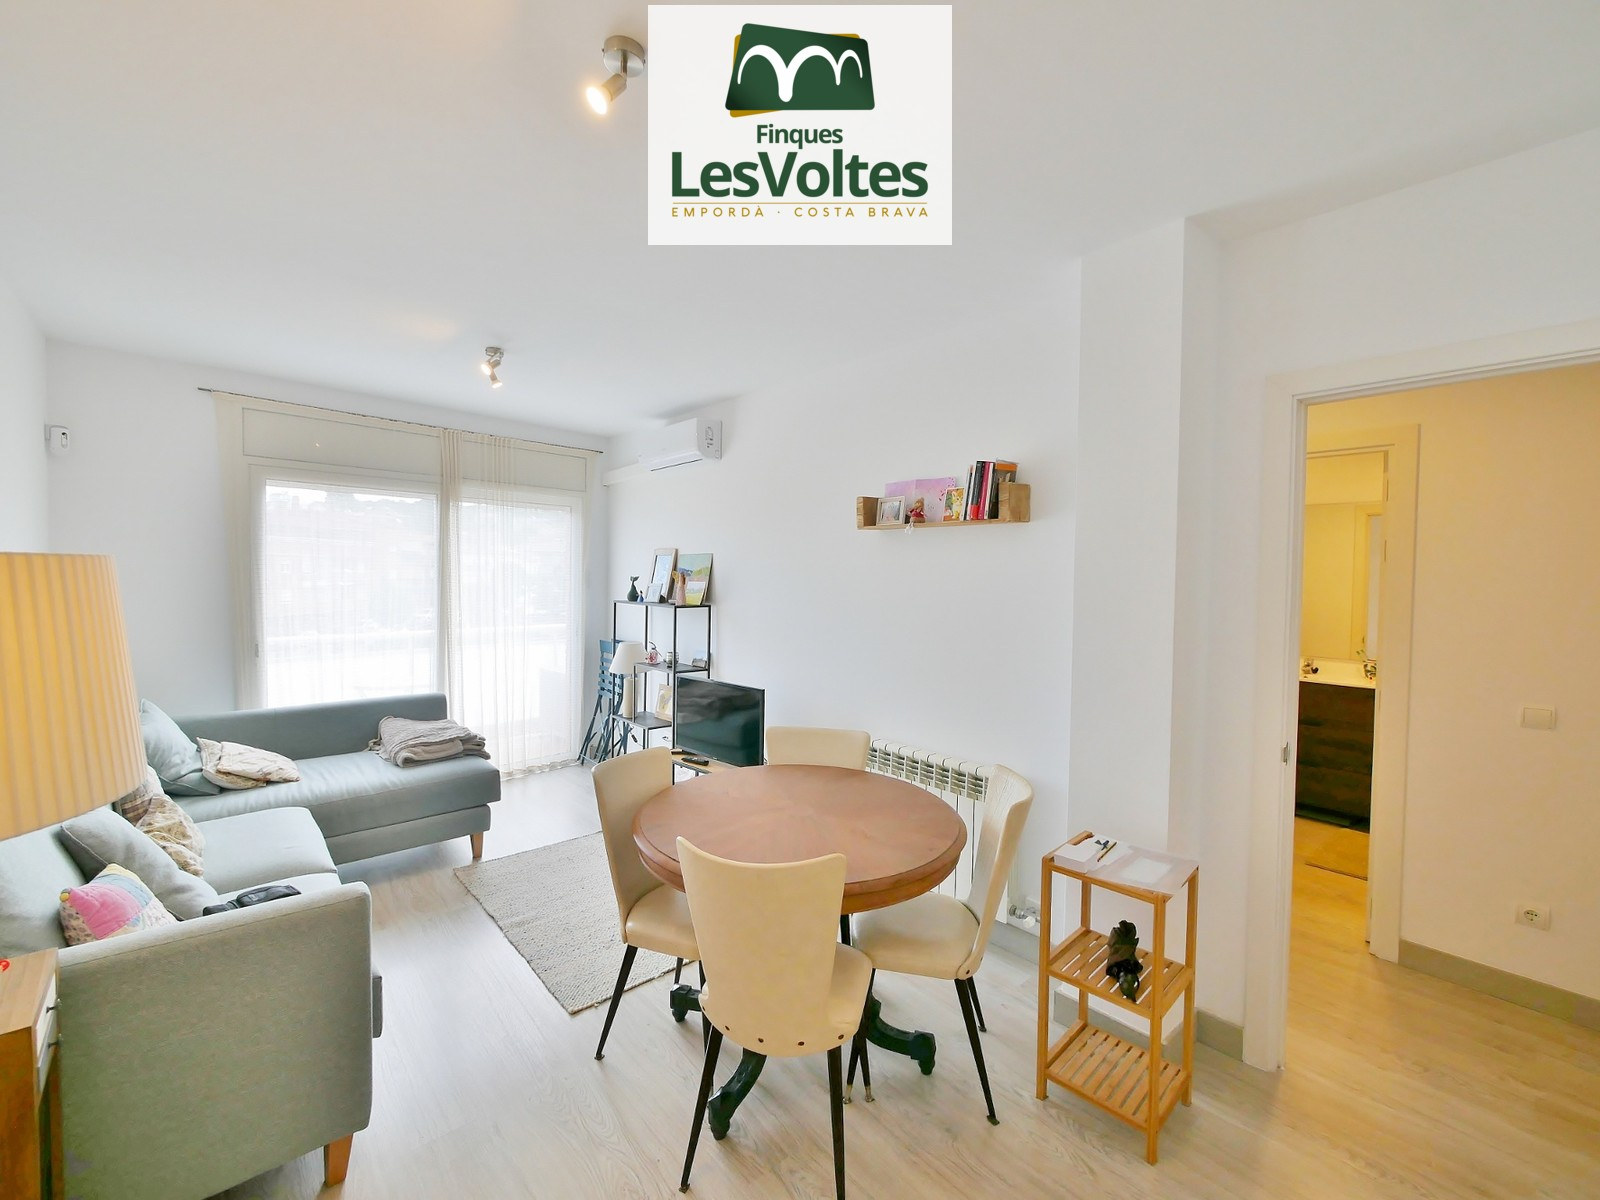 IMPECCABLE APARTMENT OF 60 M2 ON THE SECOND FLOOR WITH ELEVATOR, FOR SALE IN THE CENTER OF LA BISBAL D'EMPORDÀ.